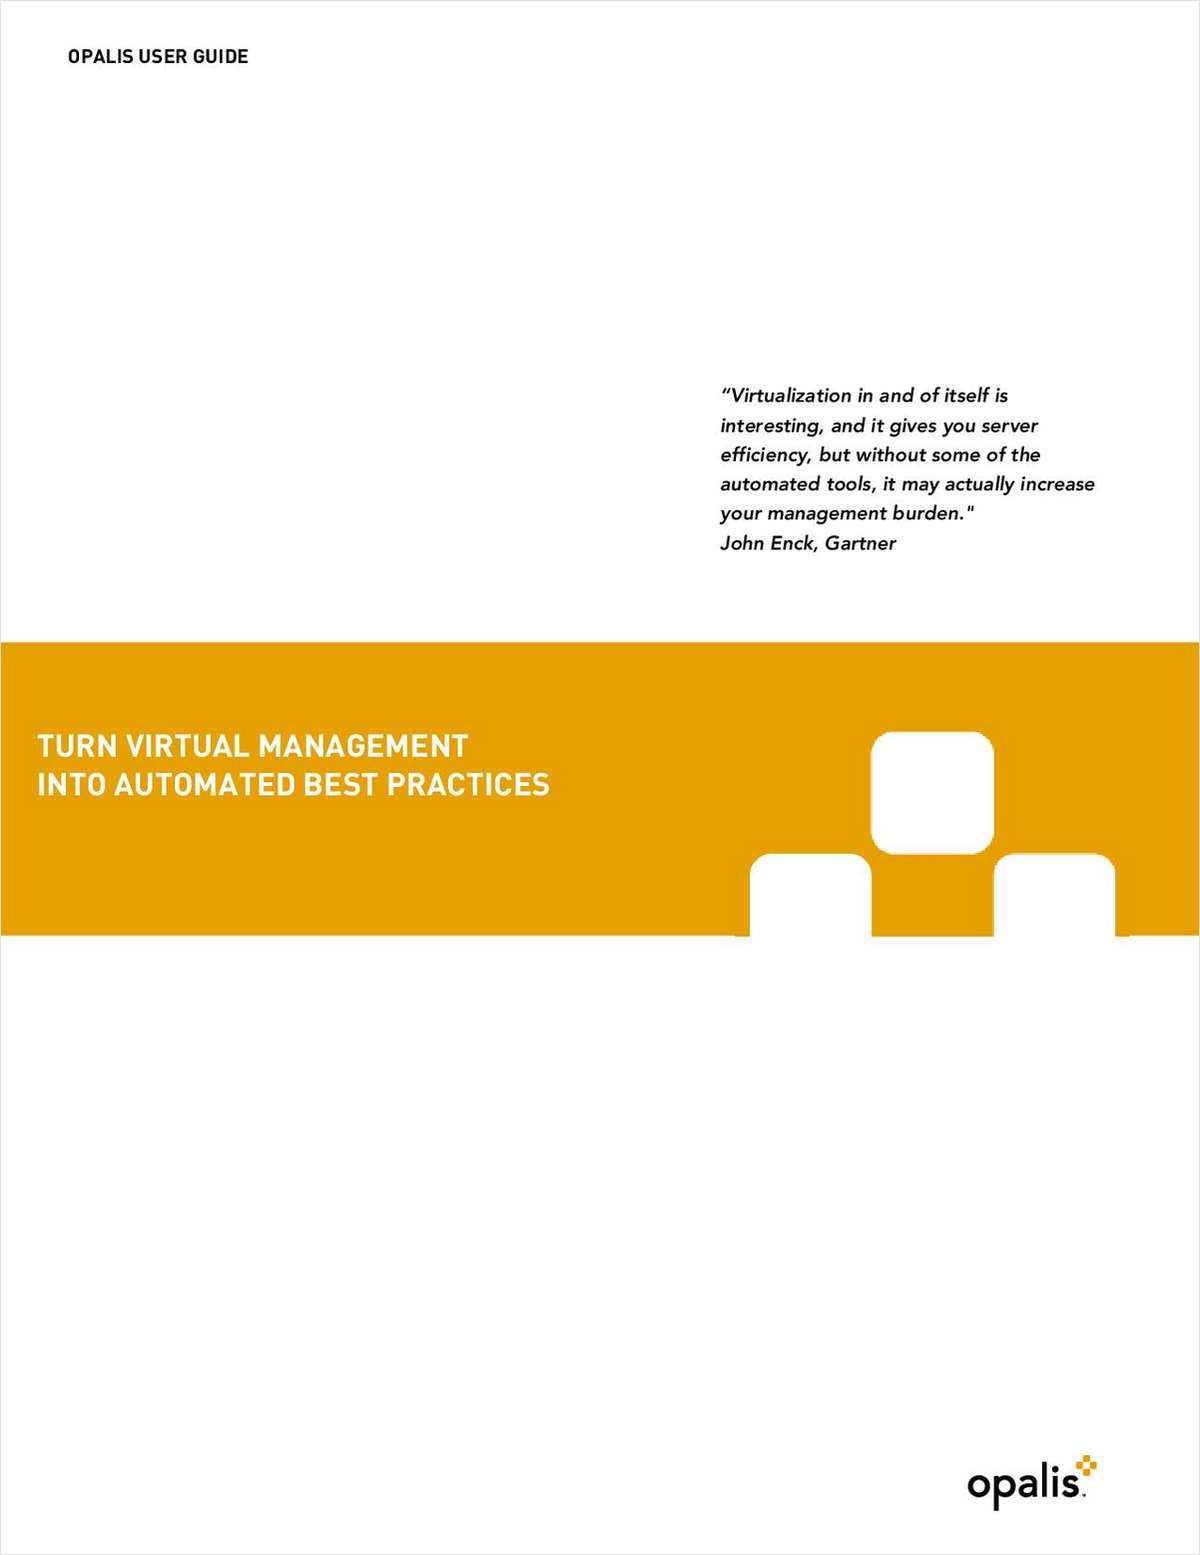 Turn Virtual Management into Automated Best Practices